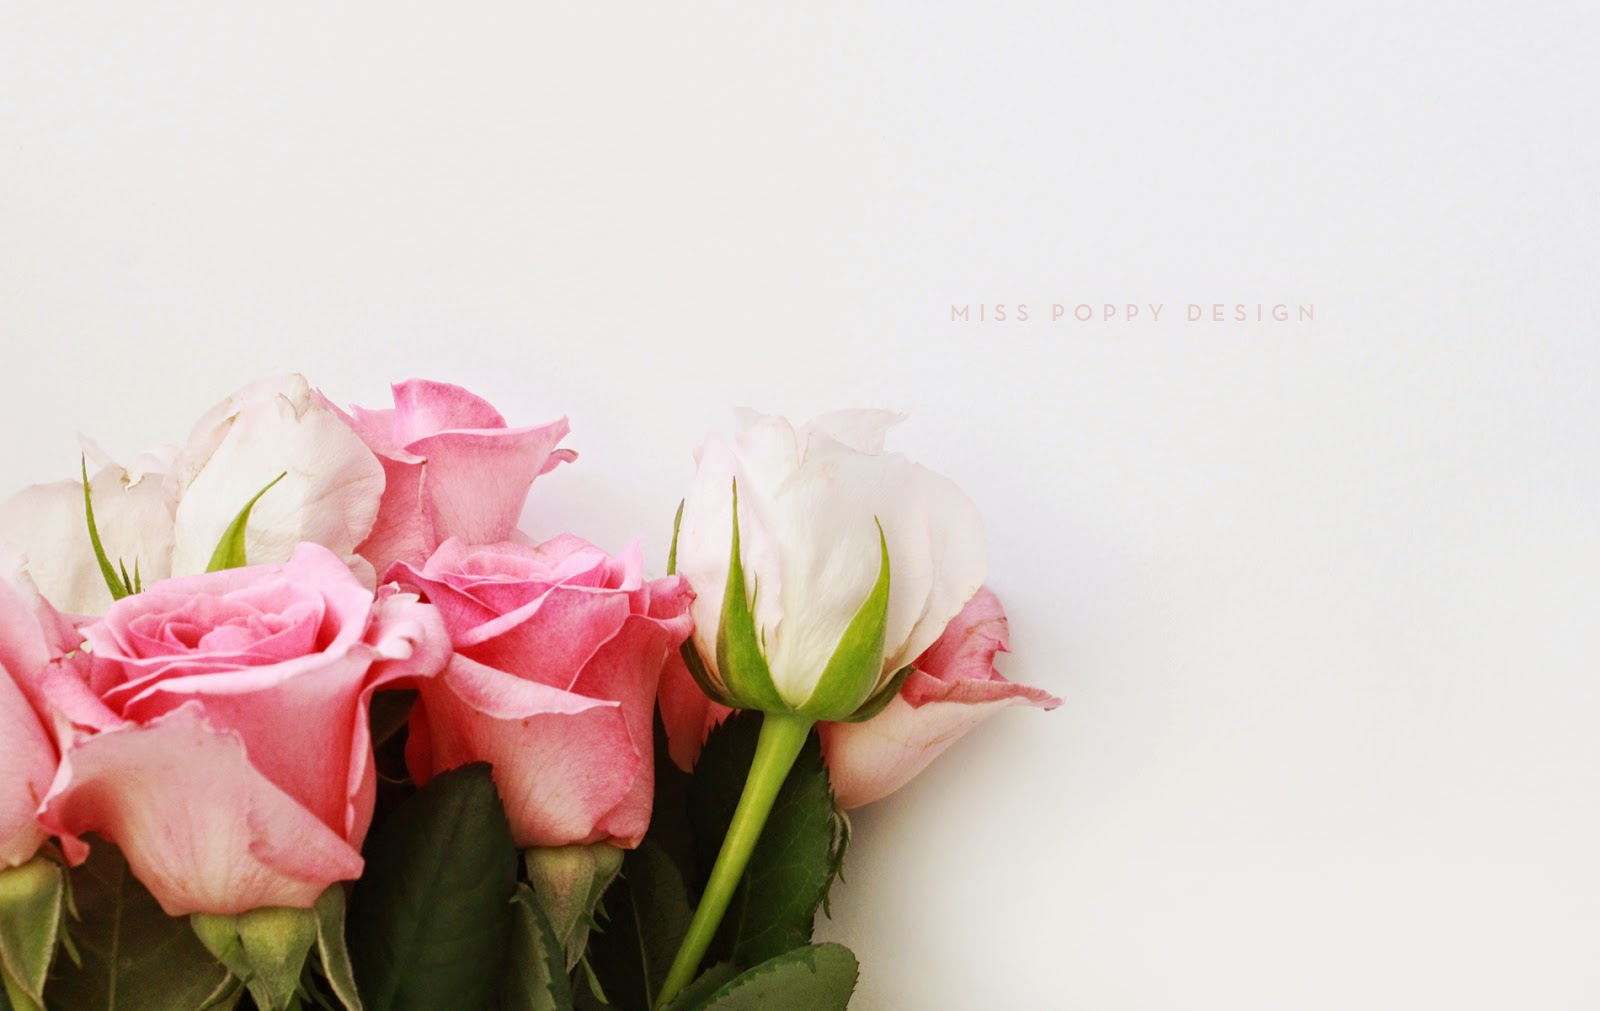 free pretty downloadable desktop wallpapers - dizzybrunette